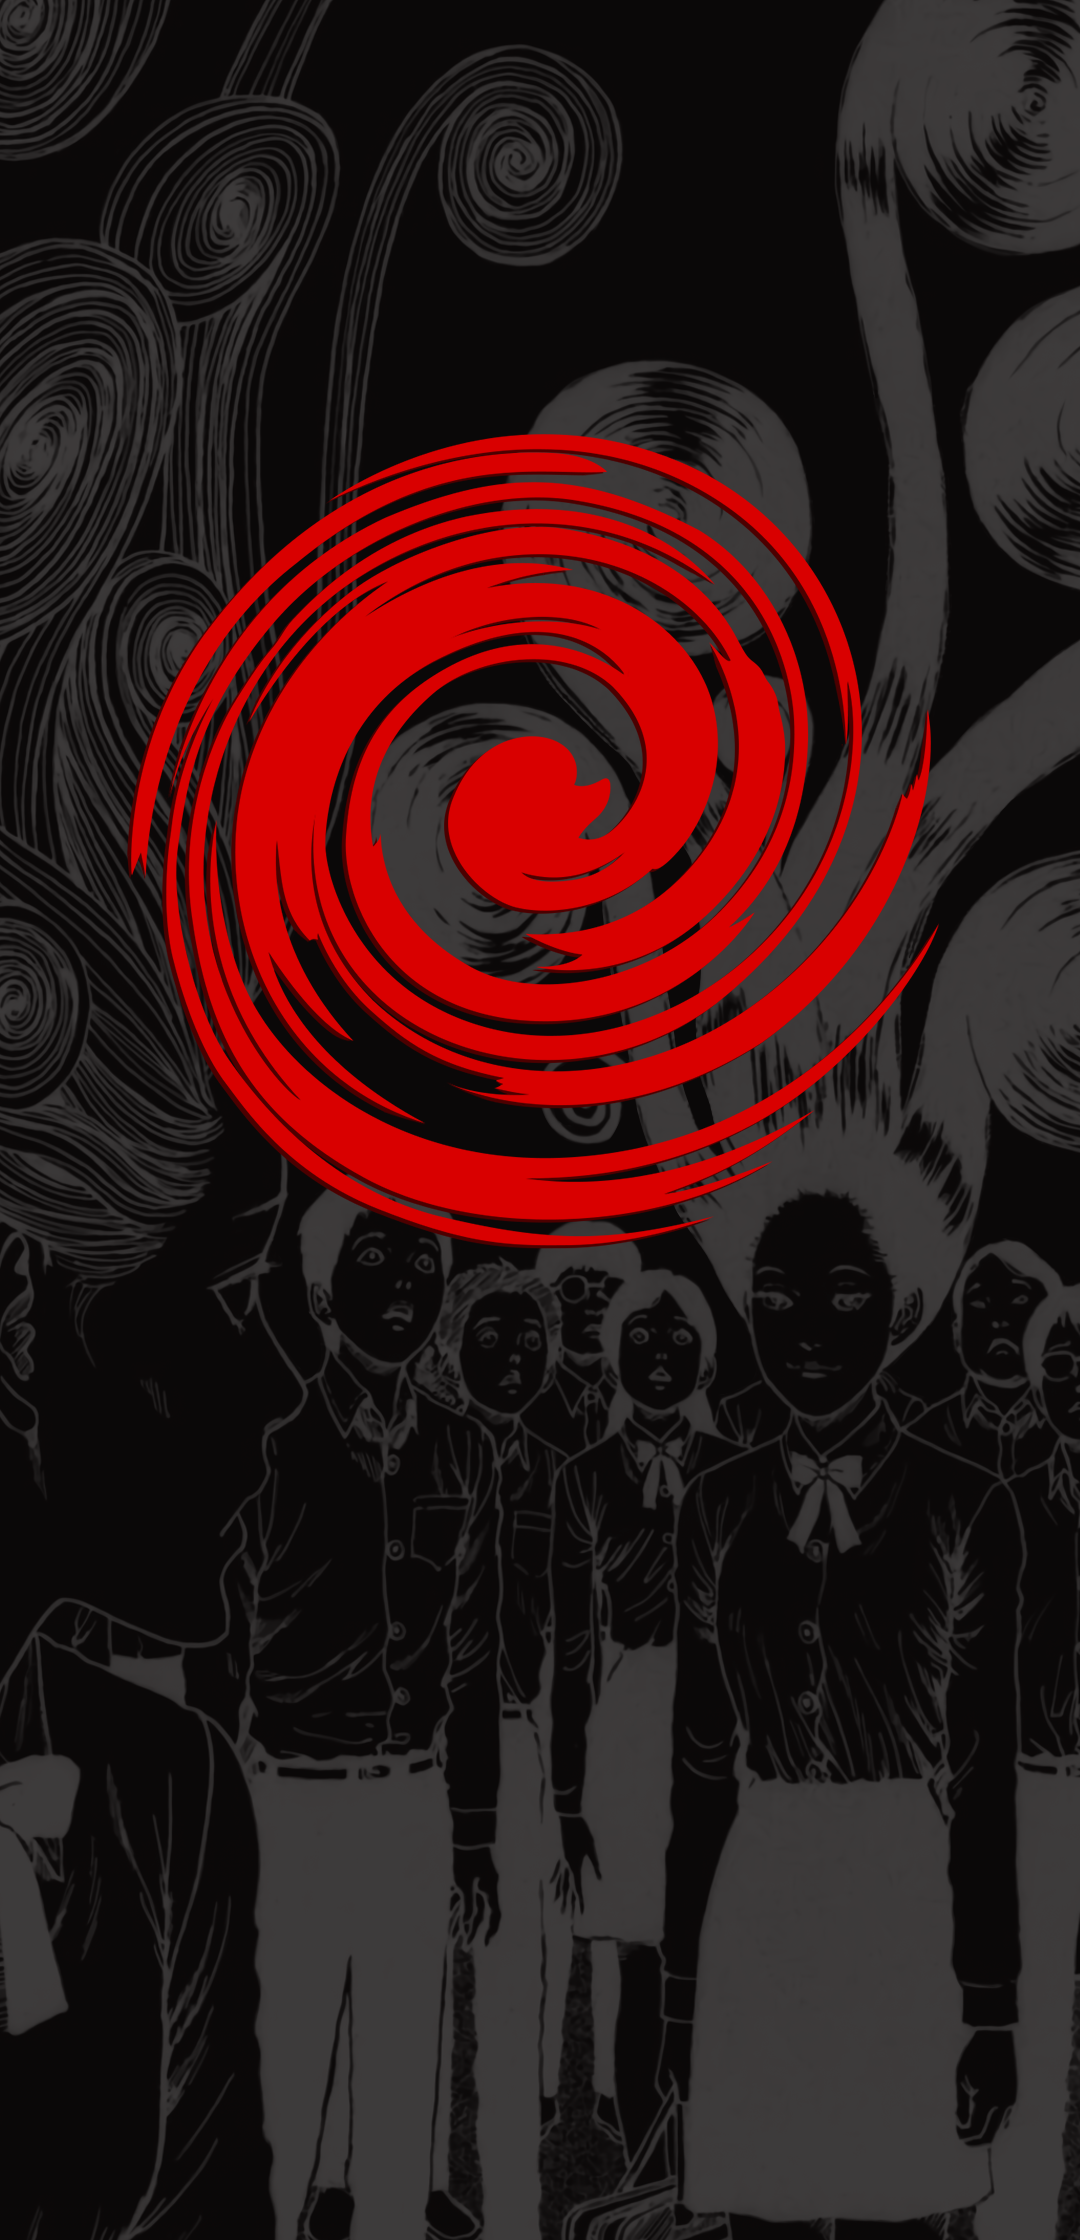 Uzumaki phone wallpaper I made up junjiito 1080x2240